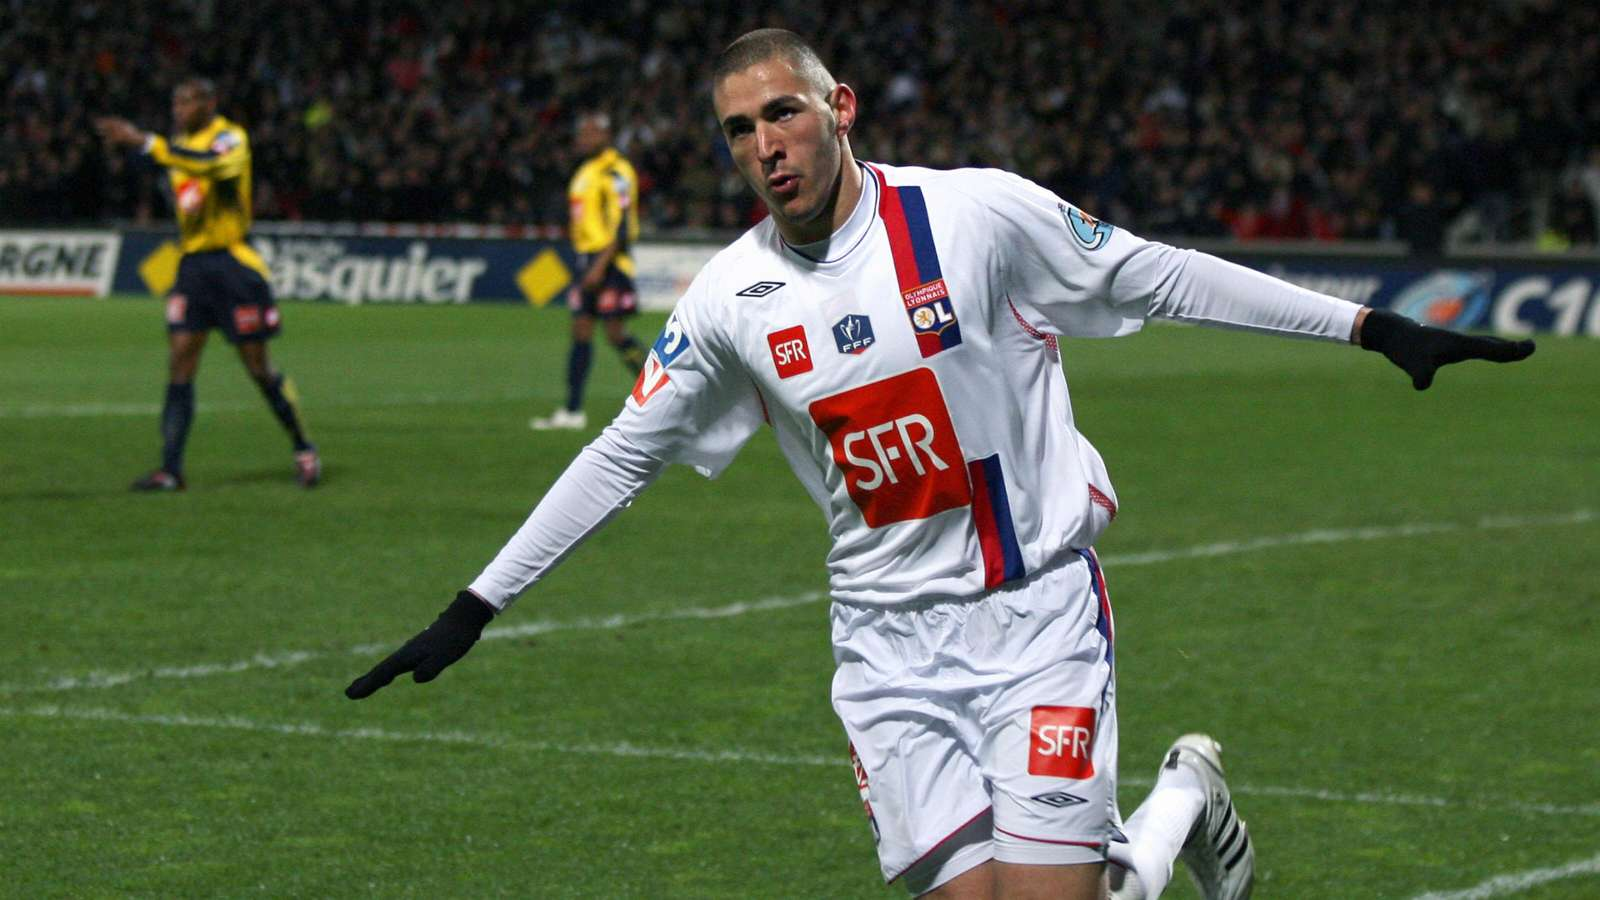 Lyon boss explains why Benzema did not move to Manchester United